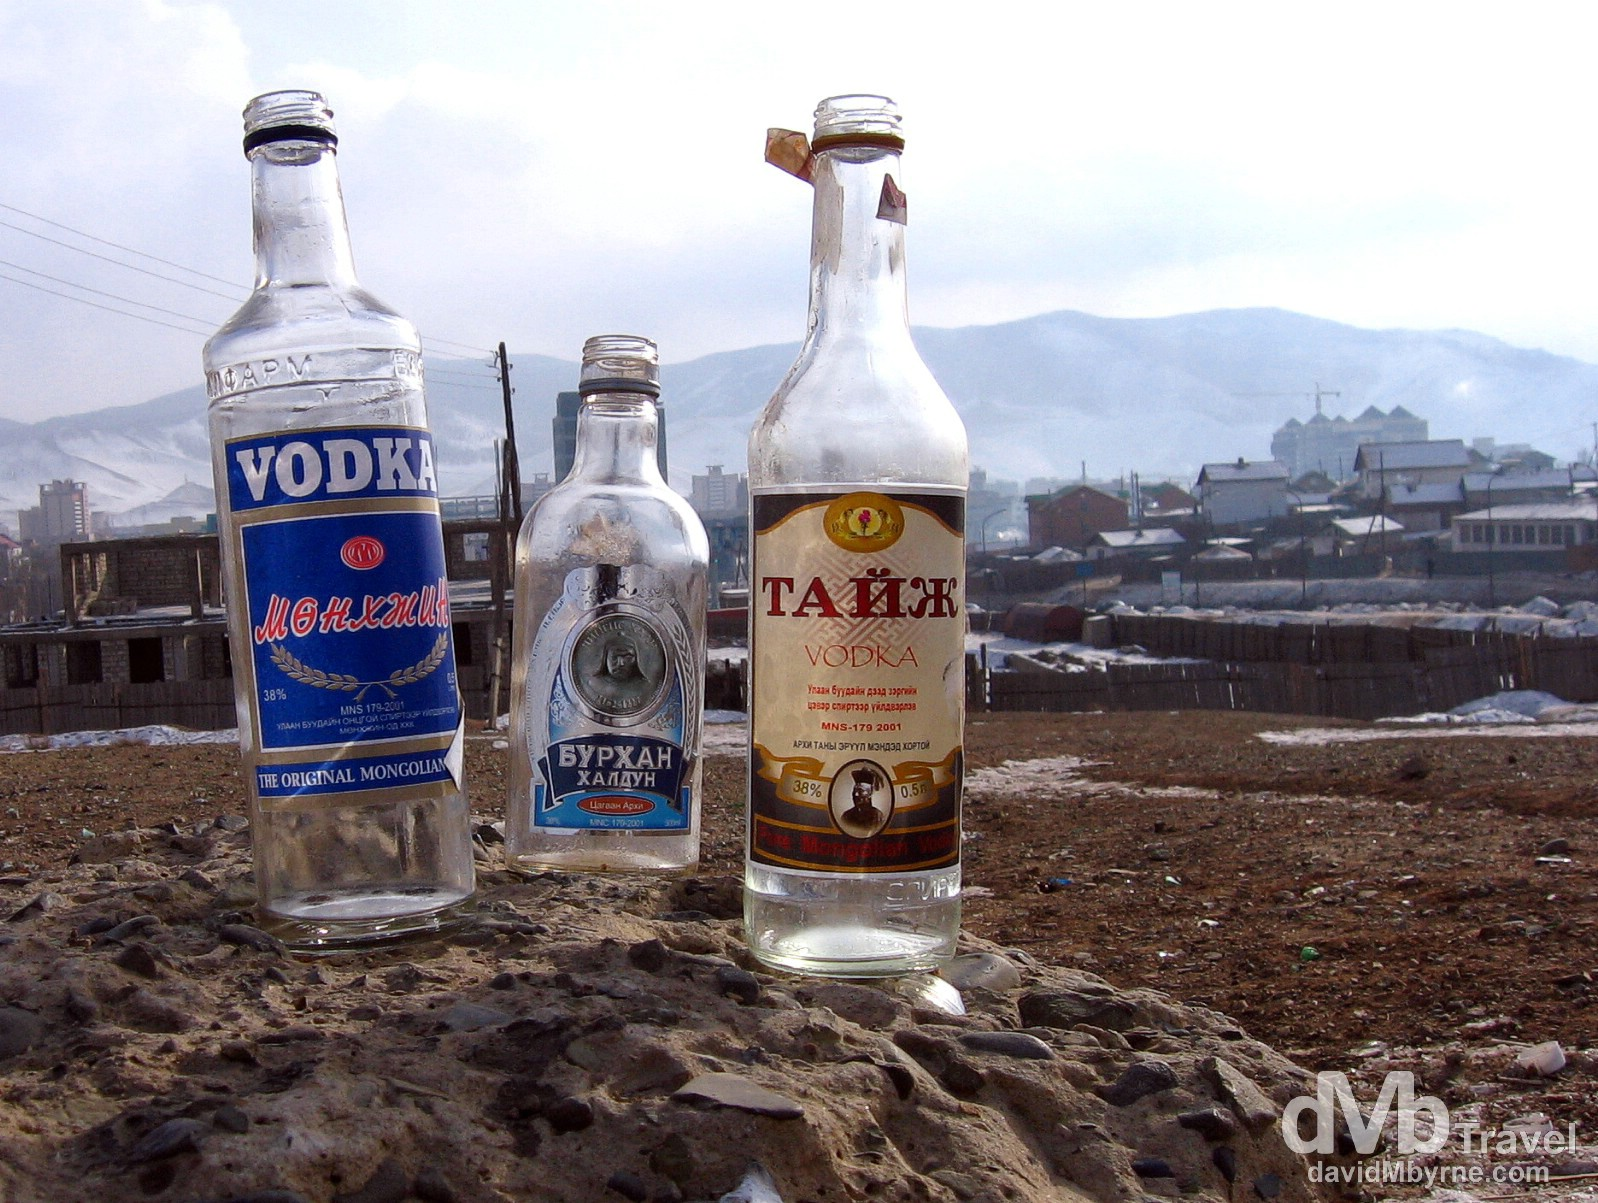 Discarded vodke bottles on Zaany Tolgoi, or Elephant's head, a hill overlooking Ulan Bator, Mongolia. February 15, 2006.